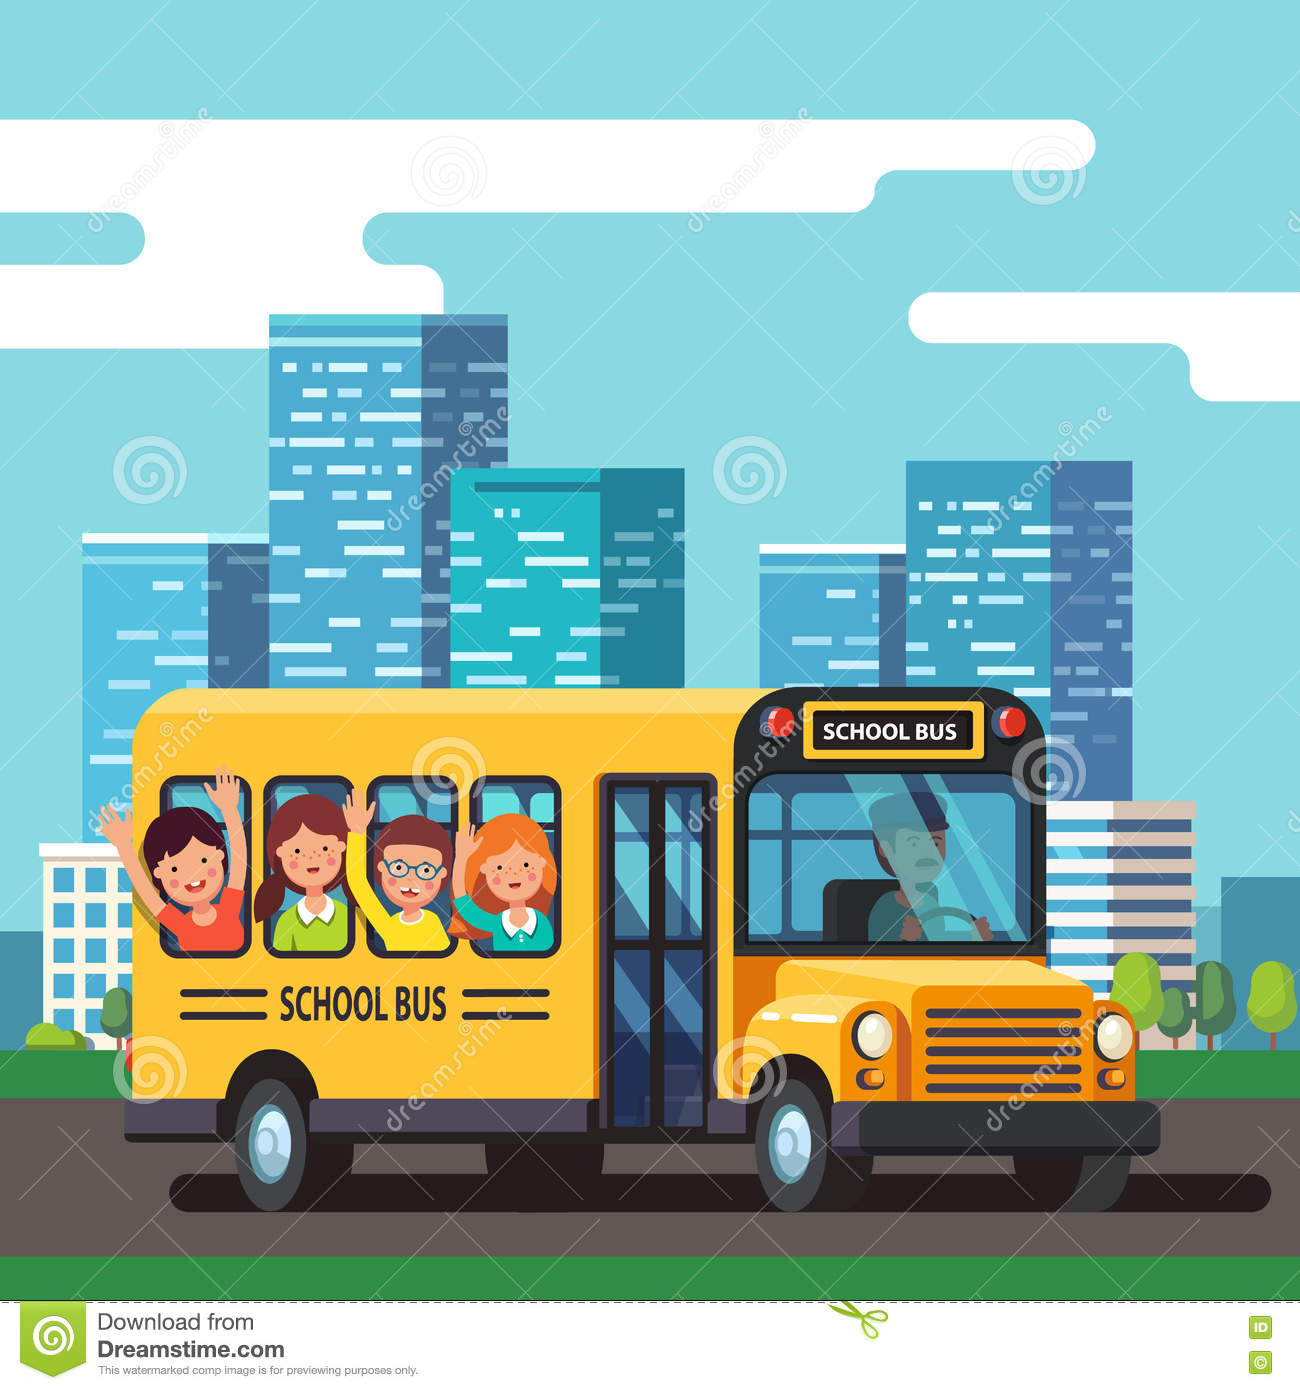 city bus driver clipart - photo #11